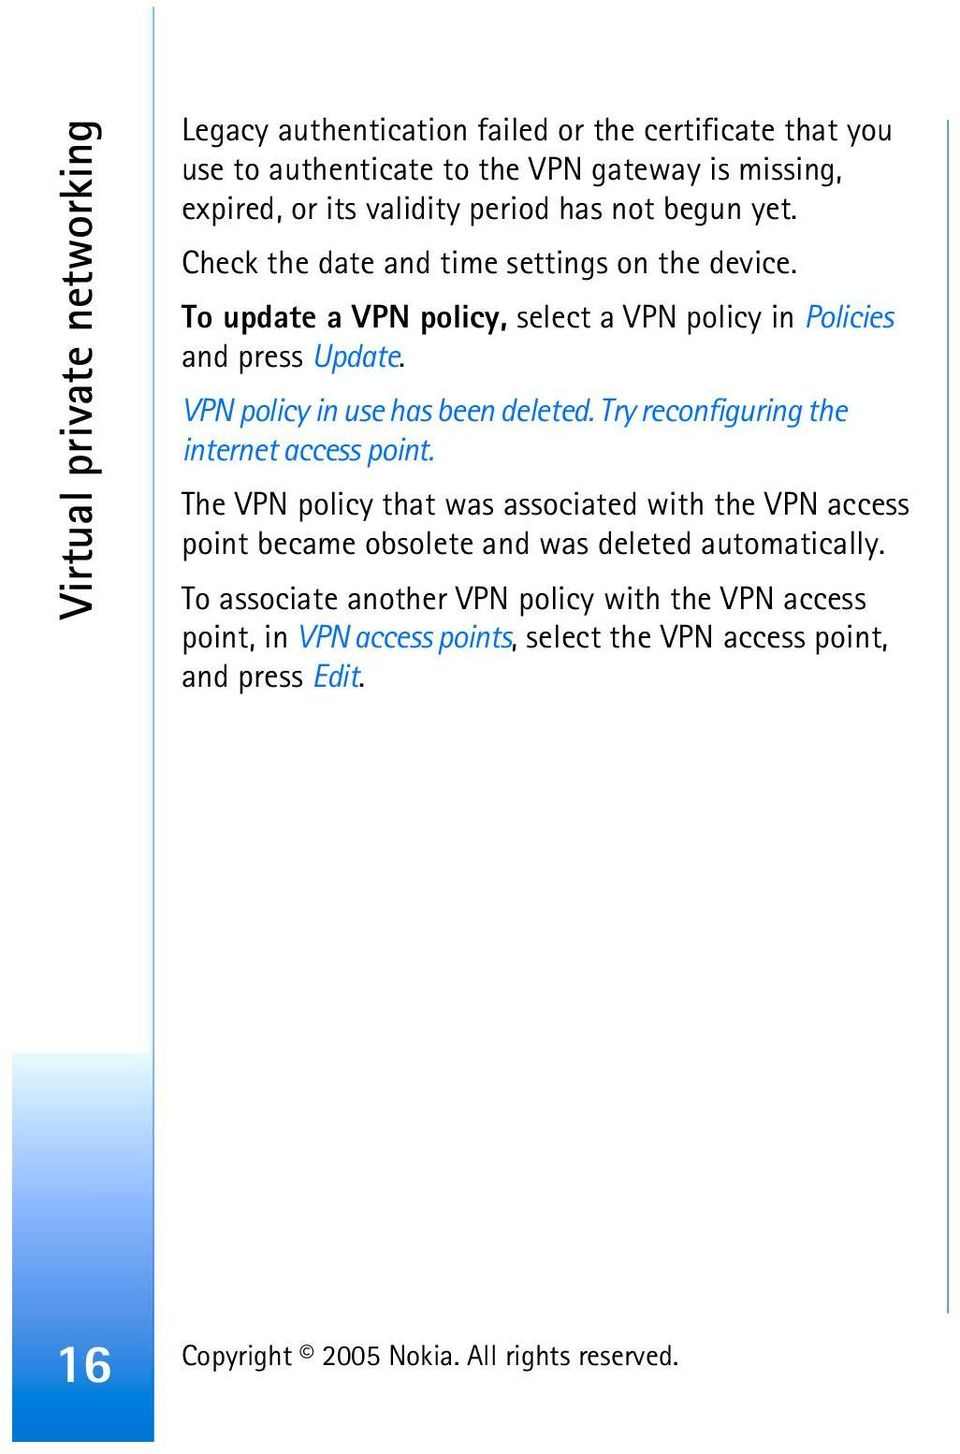 VPN policy in use has been deleted. Try reconfiguring the internet access point.